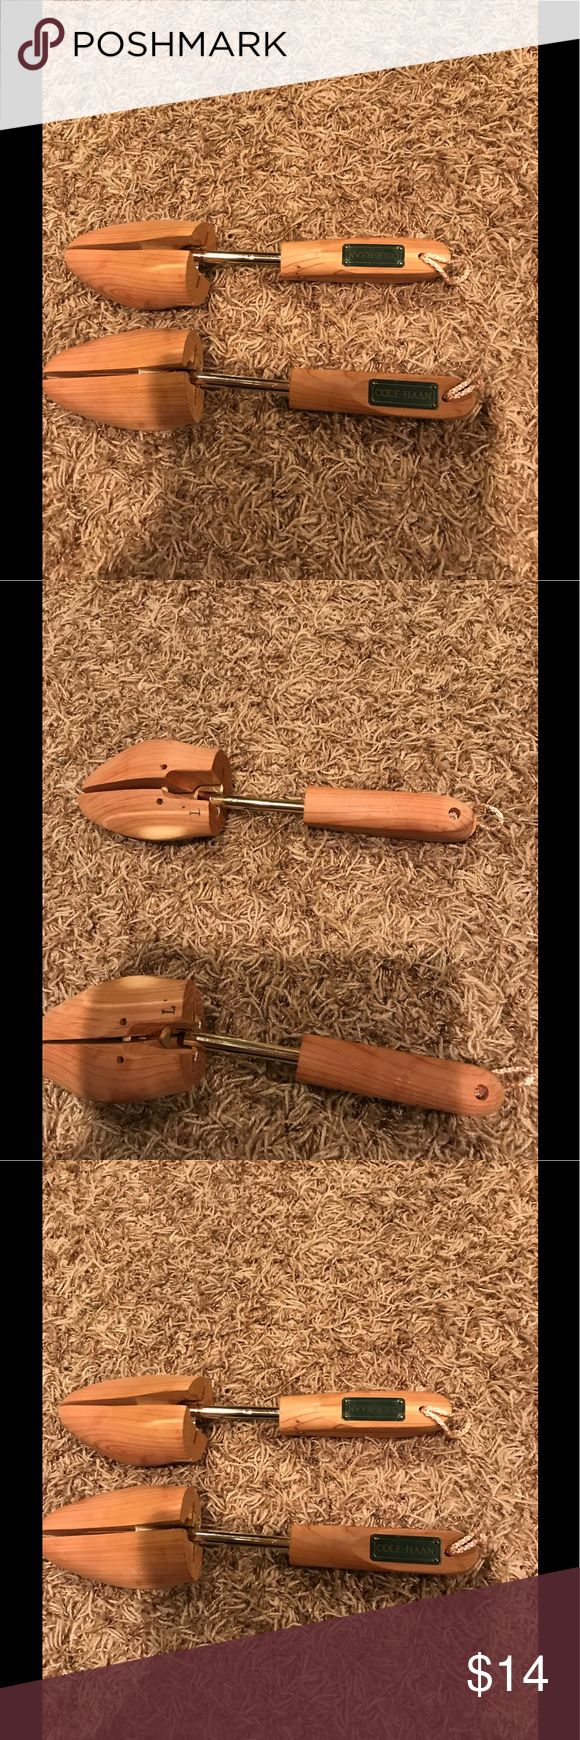 Women's cedar shoe tree by Cole Haan 100% cedar shoe tree- excellent for drawing out moisture and helping shoes to keep shape! Cole Haan Accessories